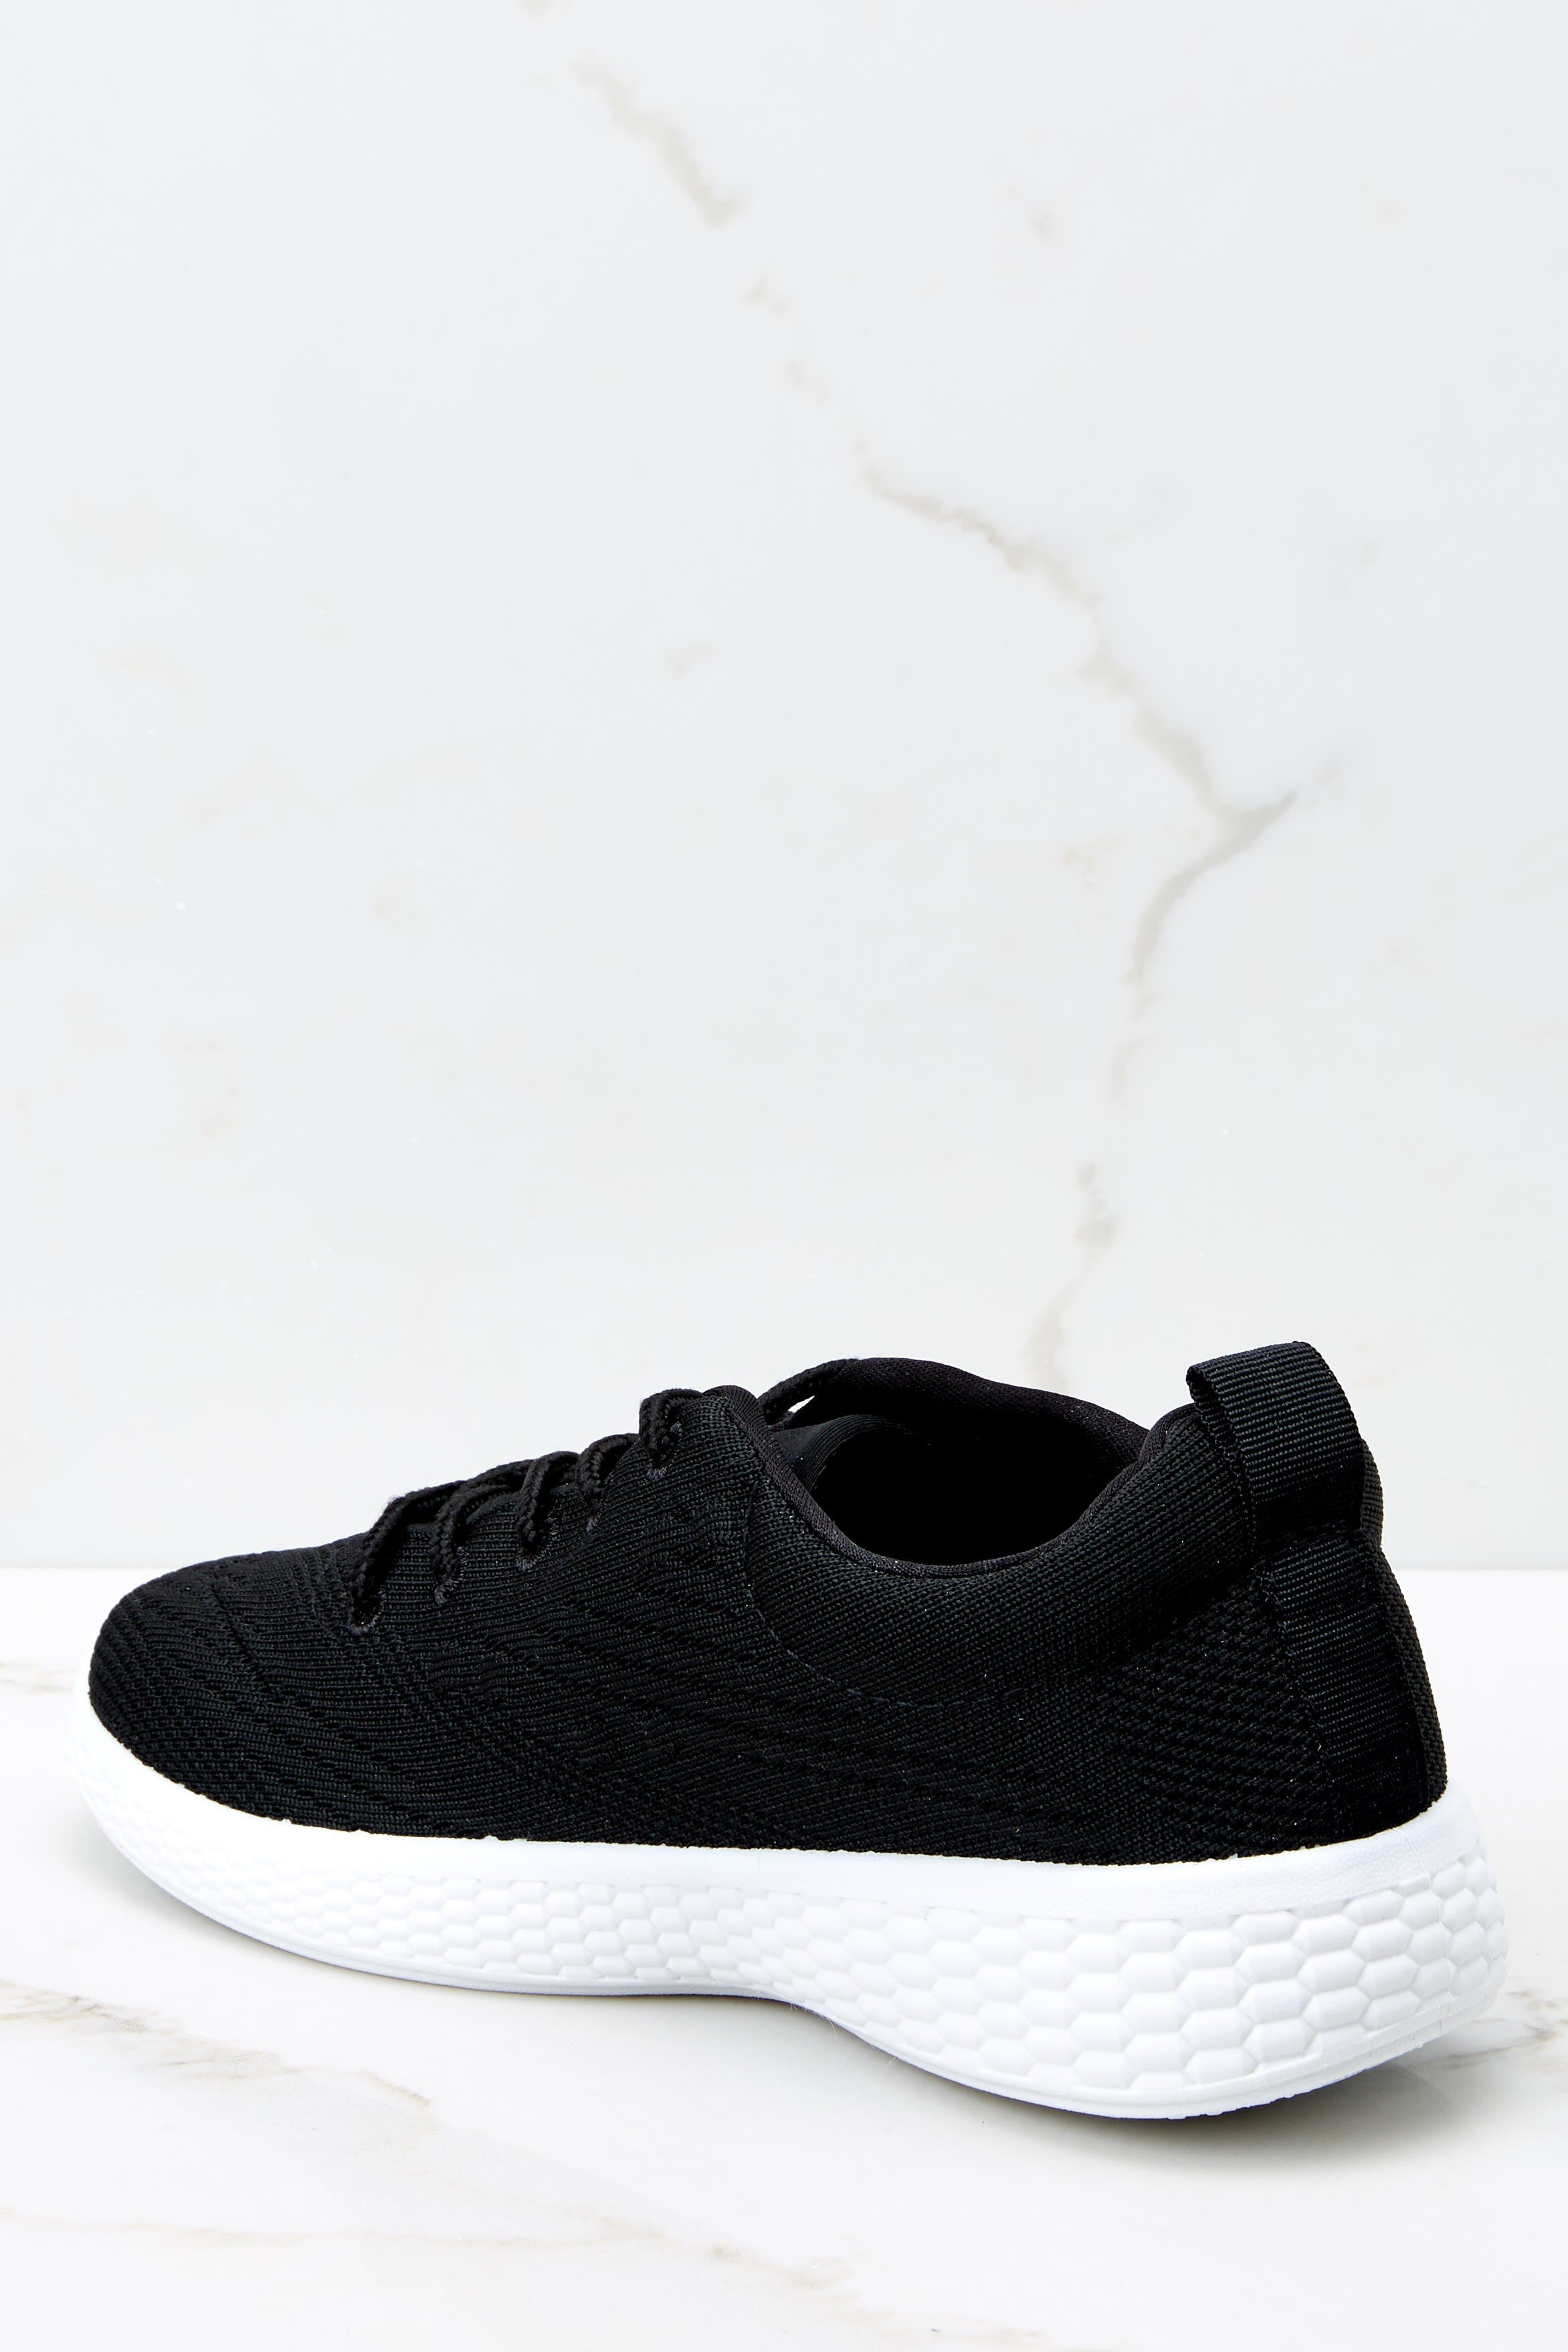 3 Buzz Off Black Sneakers at reddressboutique.com